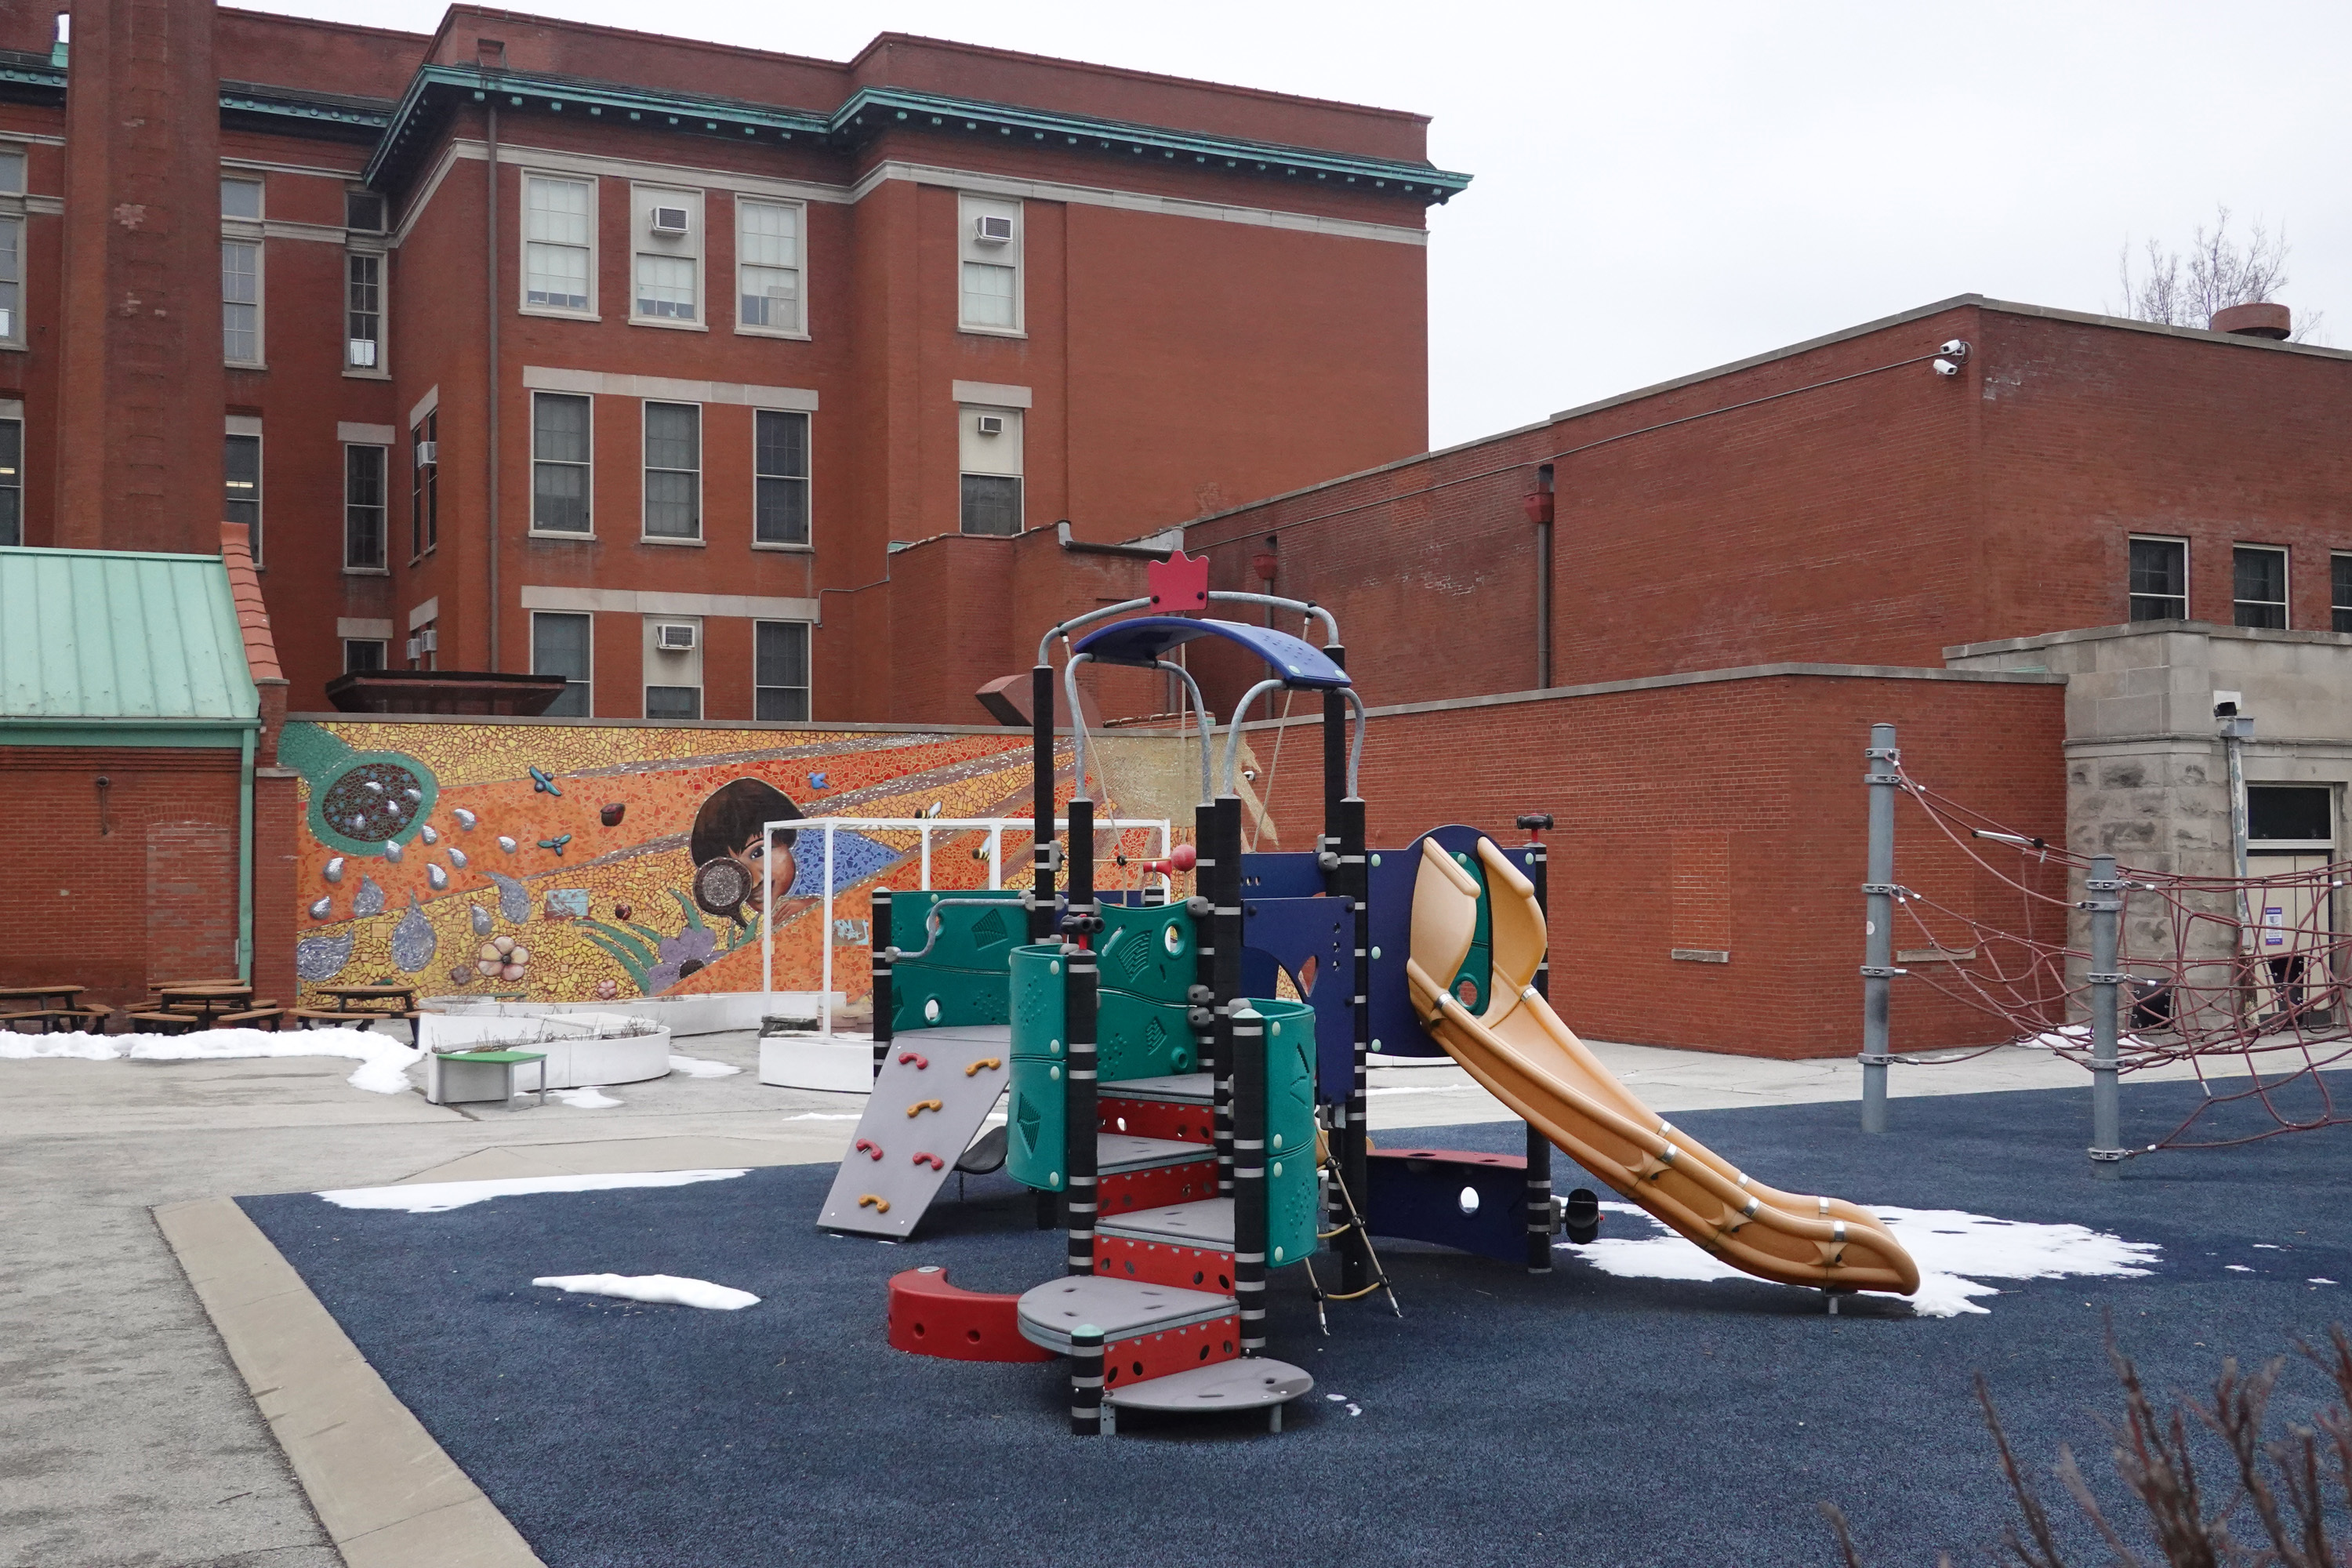 CHICAGO, ILLINOIS - JANUARY 25: Unused playground equipment sits outside of Burr Elementary School on January 25, 2021 in Chicago, Illinois. Chicago Public School teachers were scheduled to return to the classroom for in-person learning today, but the union objected and voted to continue remote learning. (Photo by Scott Olson/Getty Images)